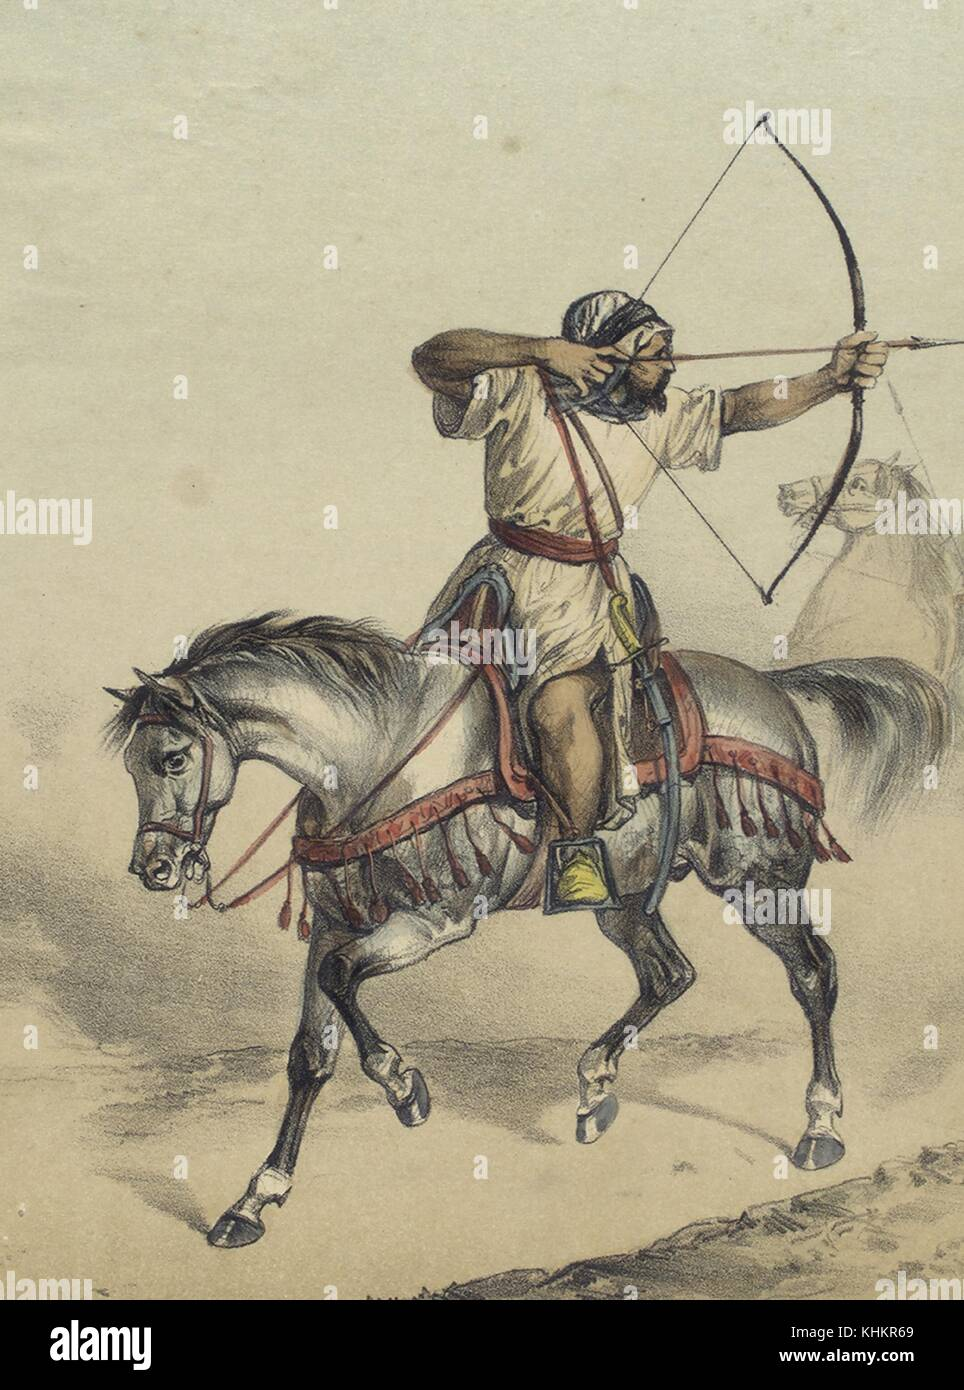 Color lithograph depicting an Arab soldier from 1410, on horseback, shooting a bow and arrow, from the book Album - Stock Image